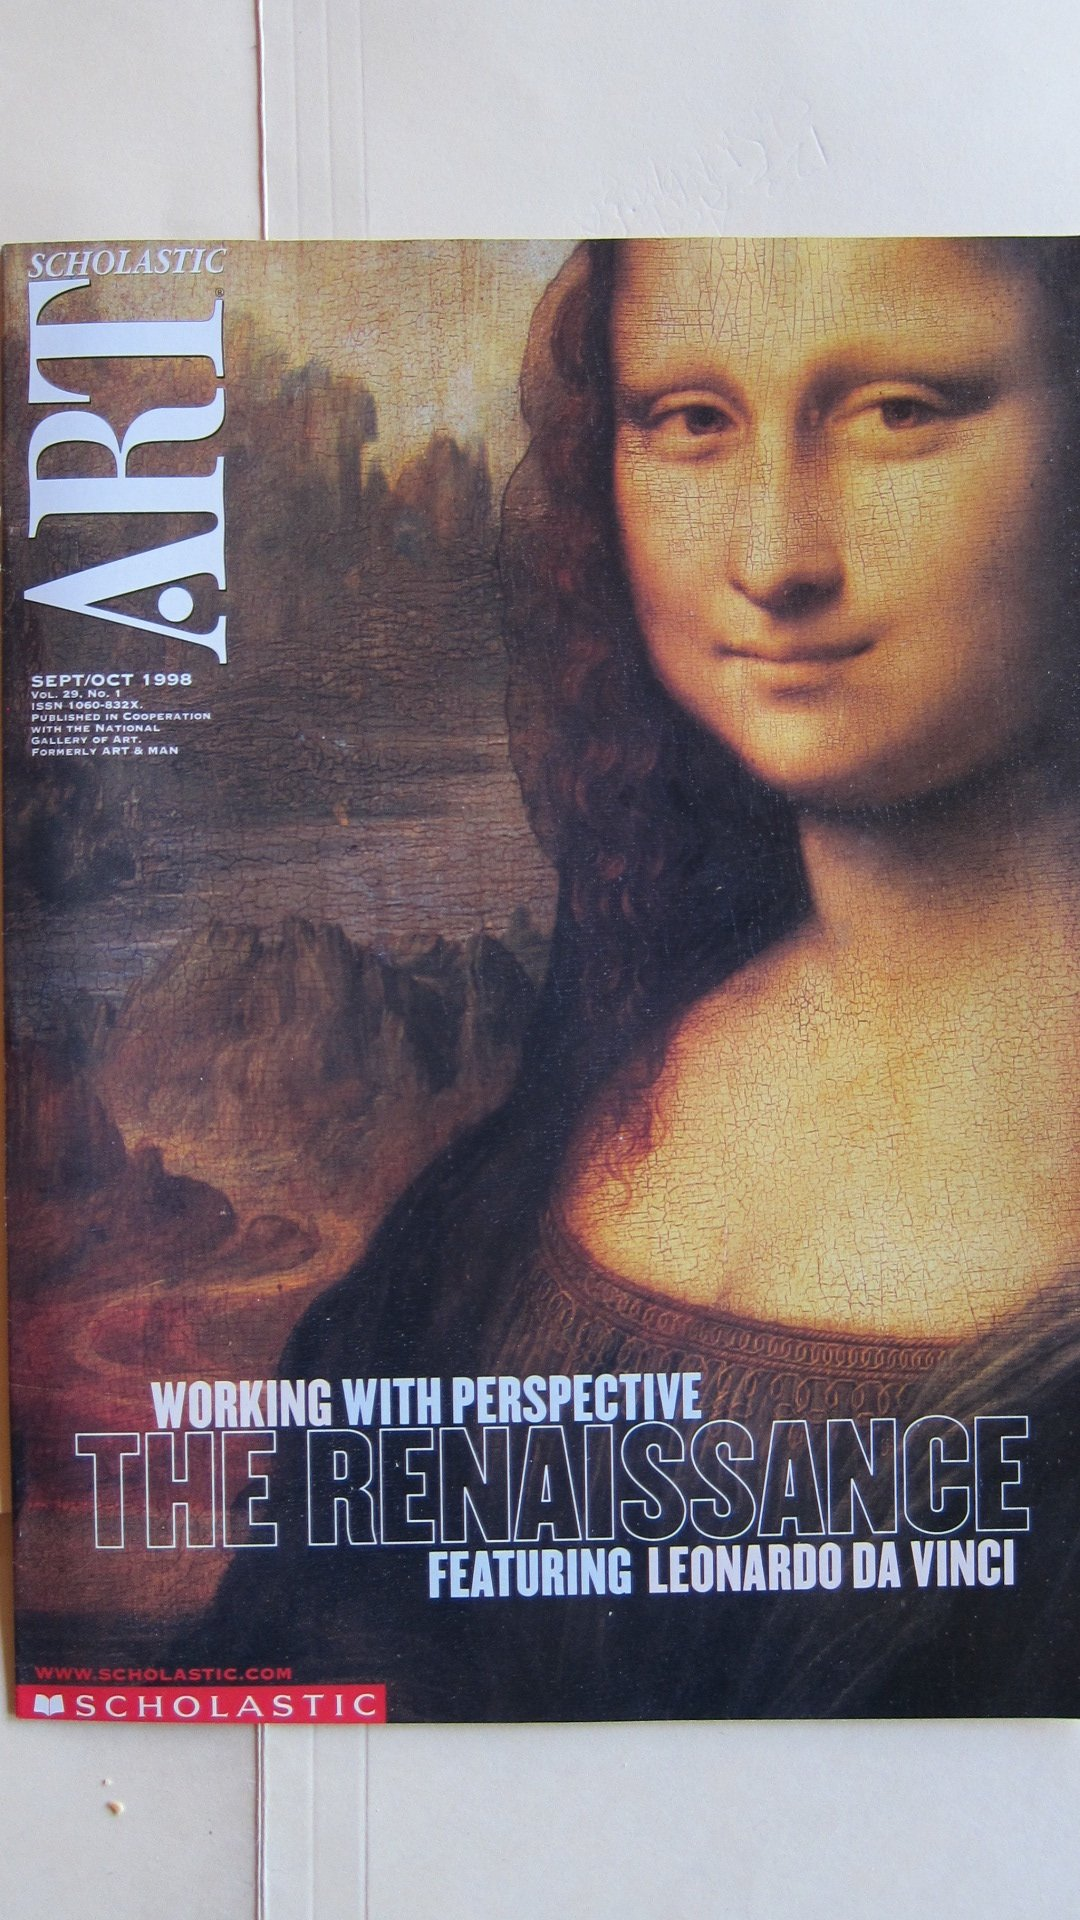 scholastic art magazine the renaissance featuring leonardo da vinci working with perspective scholastic art magazine